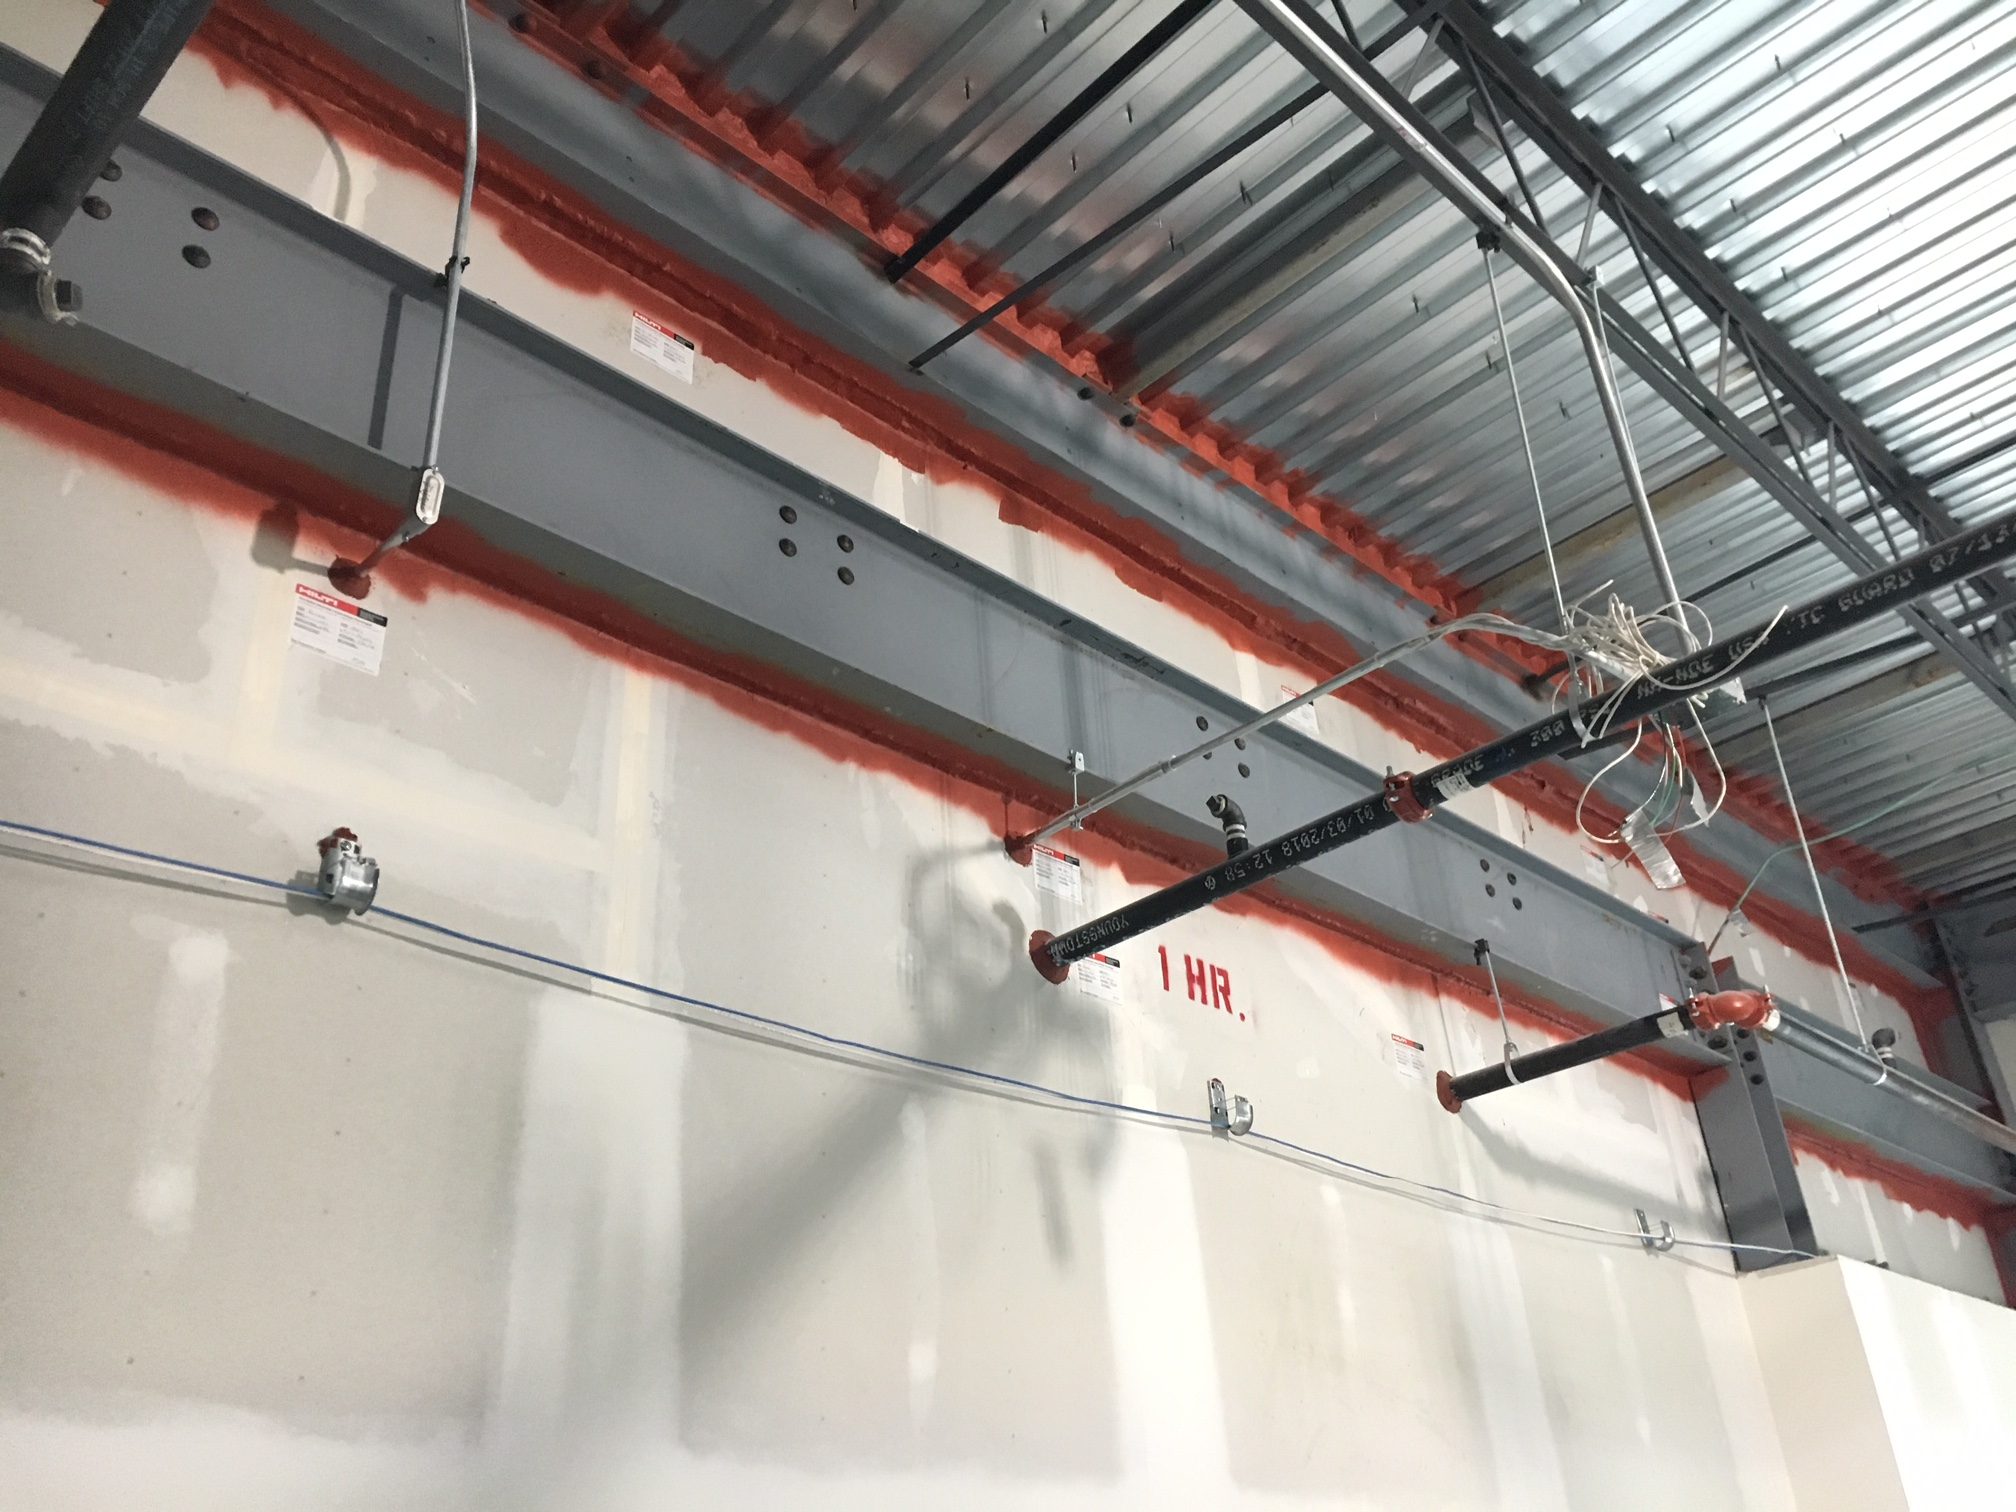 Fire Stopping - AAC Contracting is a Firestop Contractors International Association (FCIA) Member and a FM 4991 Approved Contractor.For more information on this stringent quality installation protocol visit FCIA's Website.